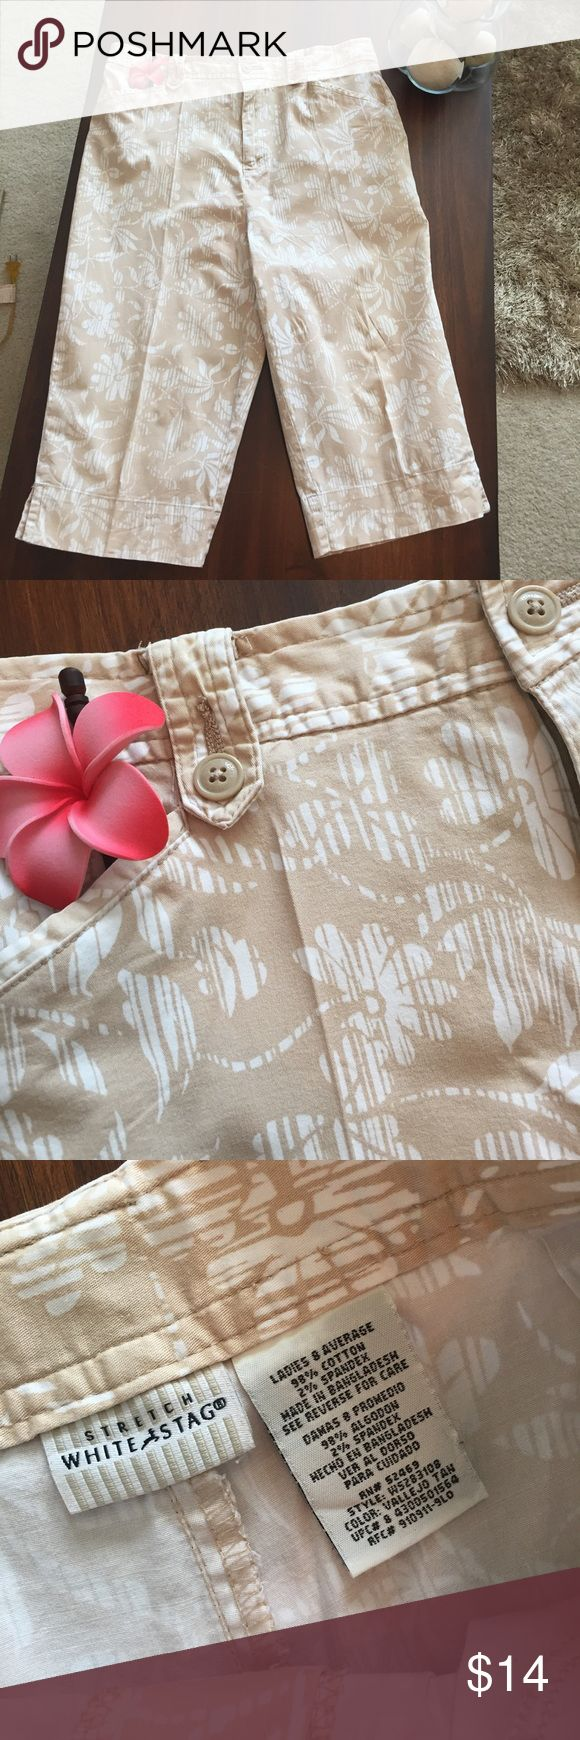 "White Stag Capris Very nice condition. Light, beige and white ""line-thru"" floral print is great for spring or summer outfits. White blouse and beige sandals ... out the door! White Stag Pants Capris"